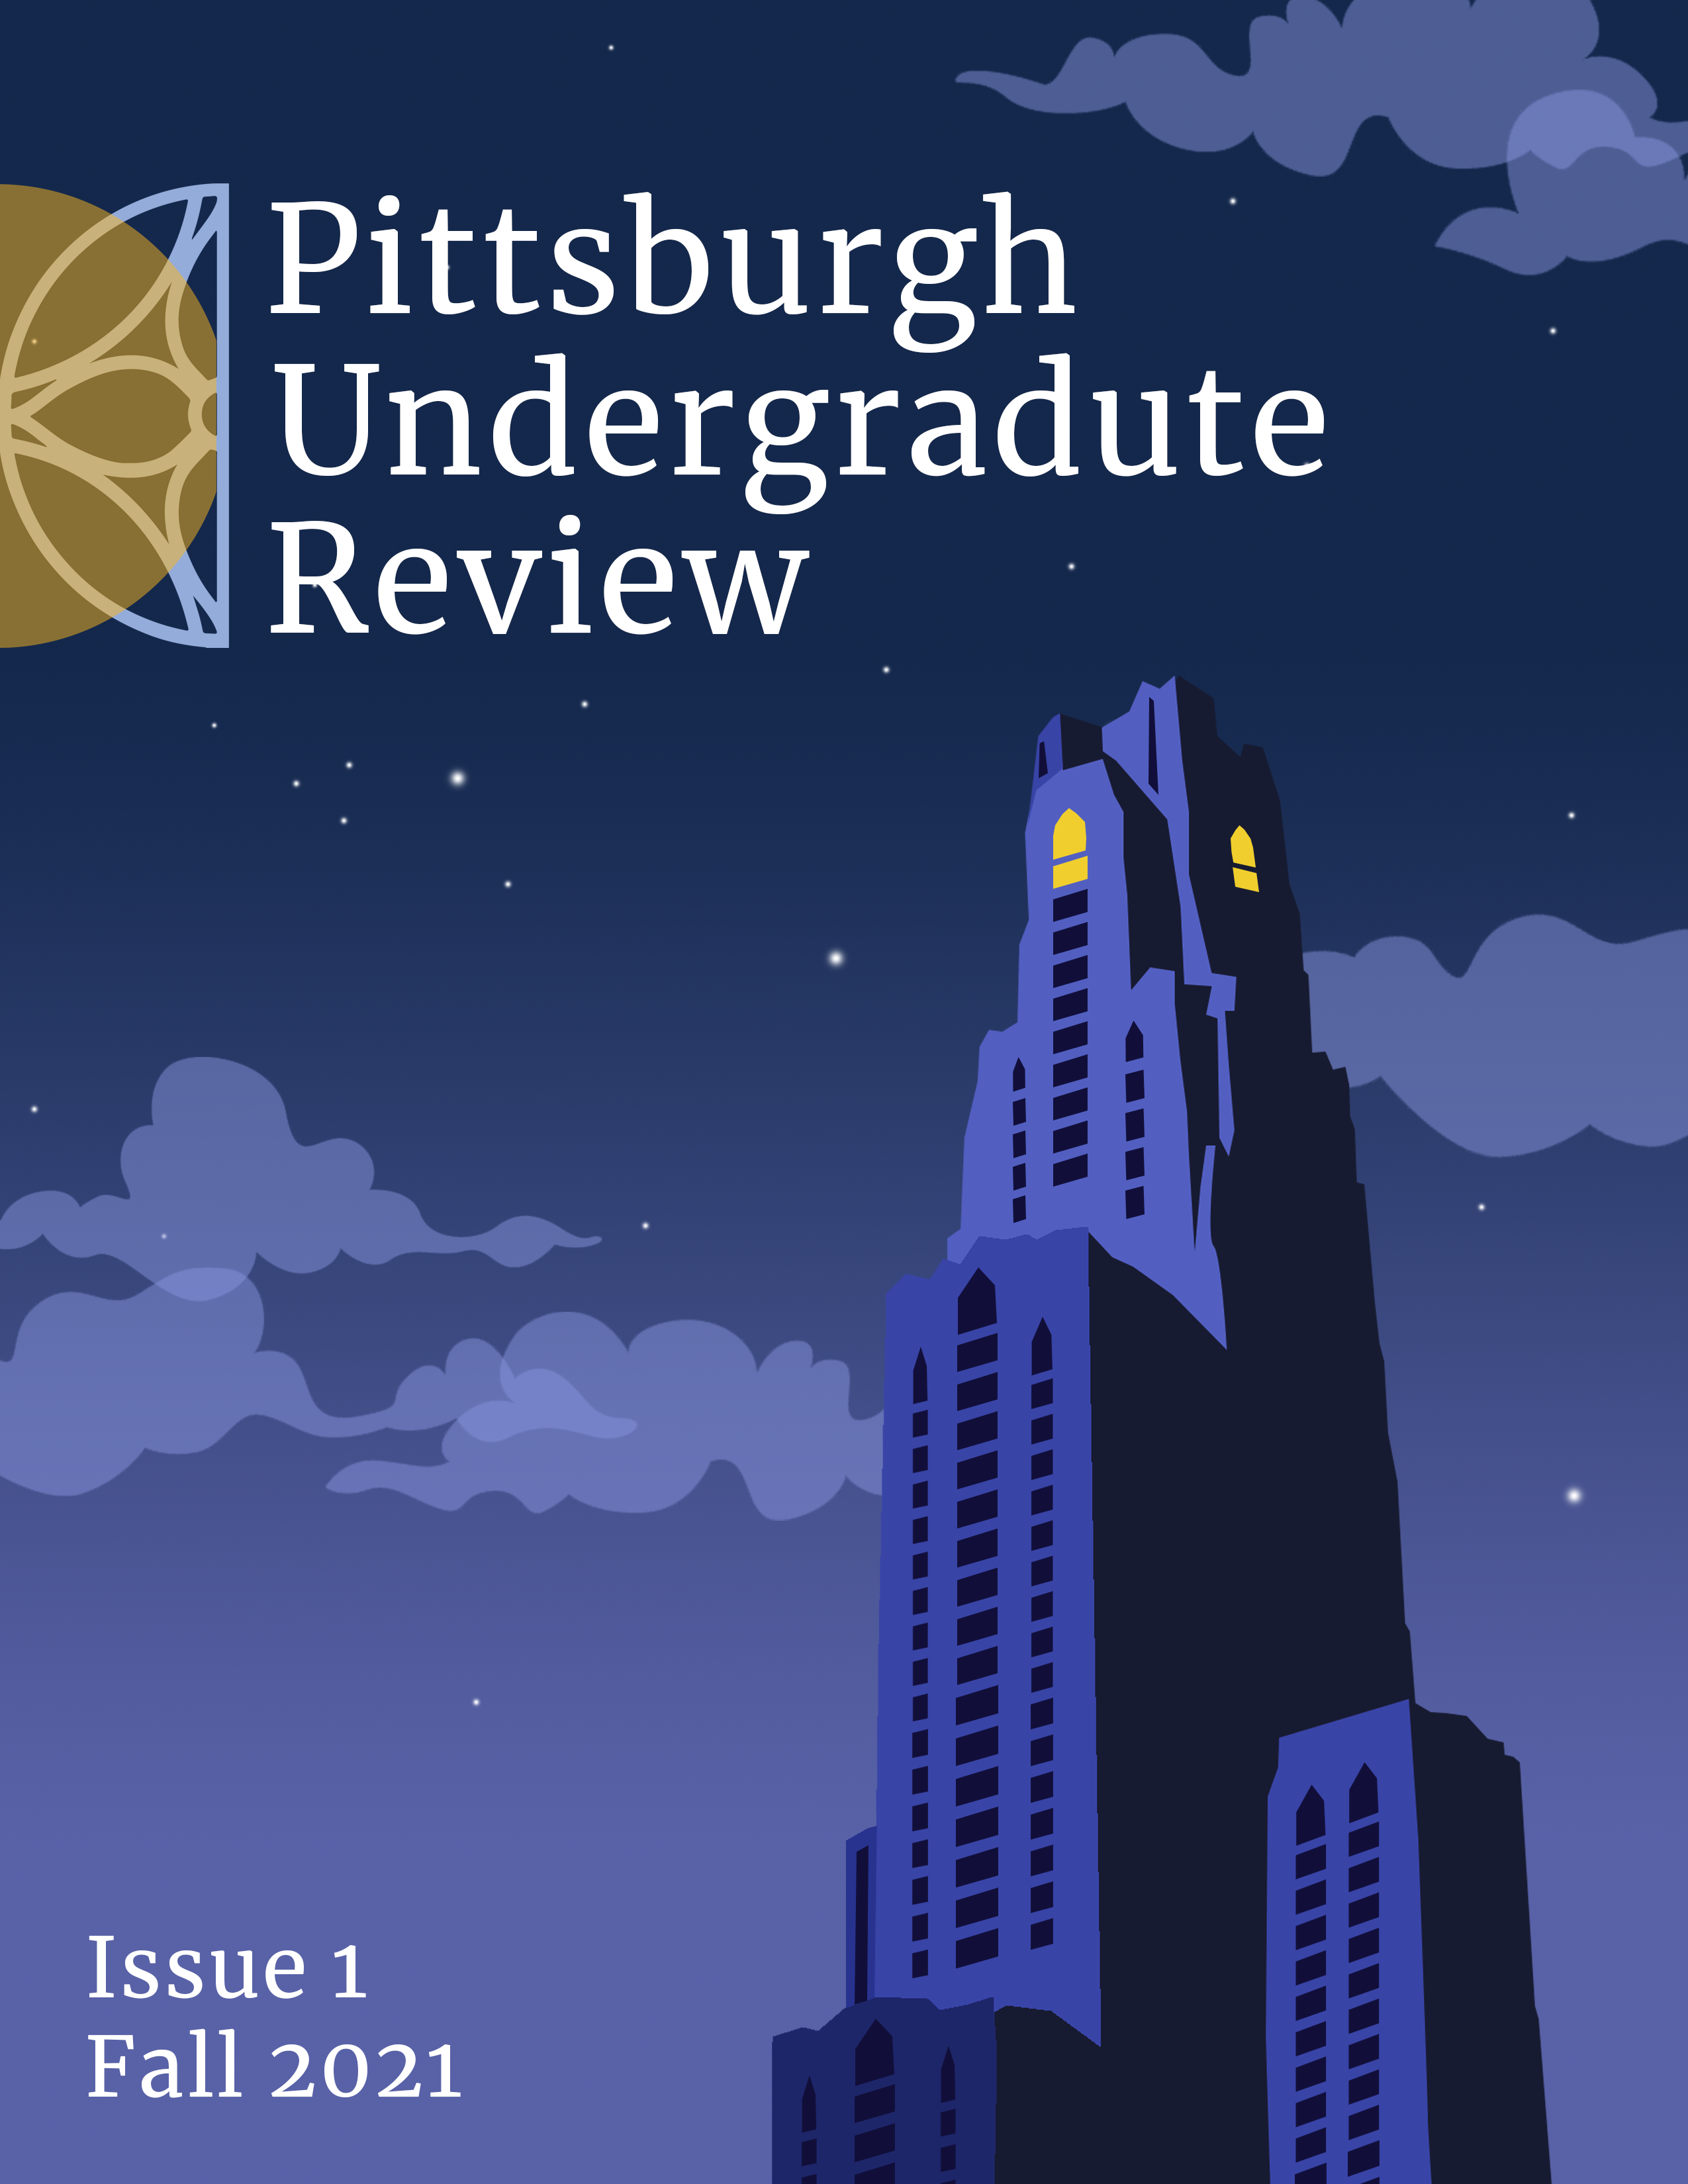 Cover image of issue 1. View of Cathedral of Learning against a night sky, with PUR logo. Light appears on on the 36th floor.